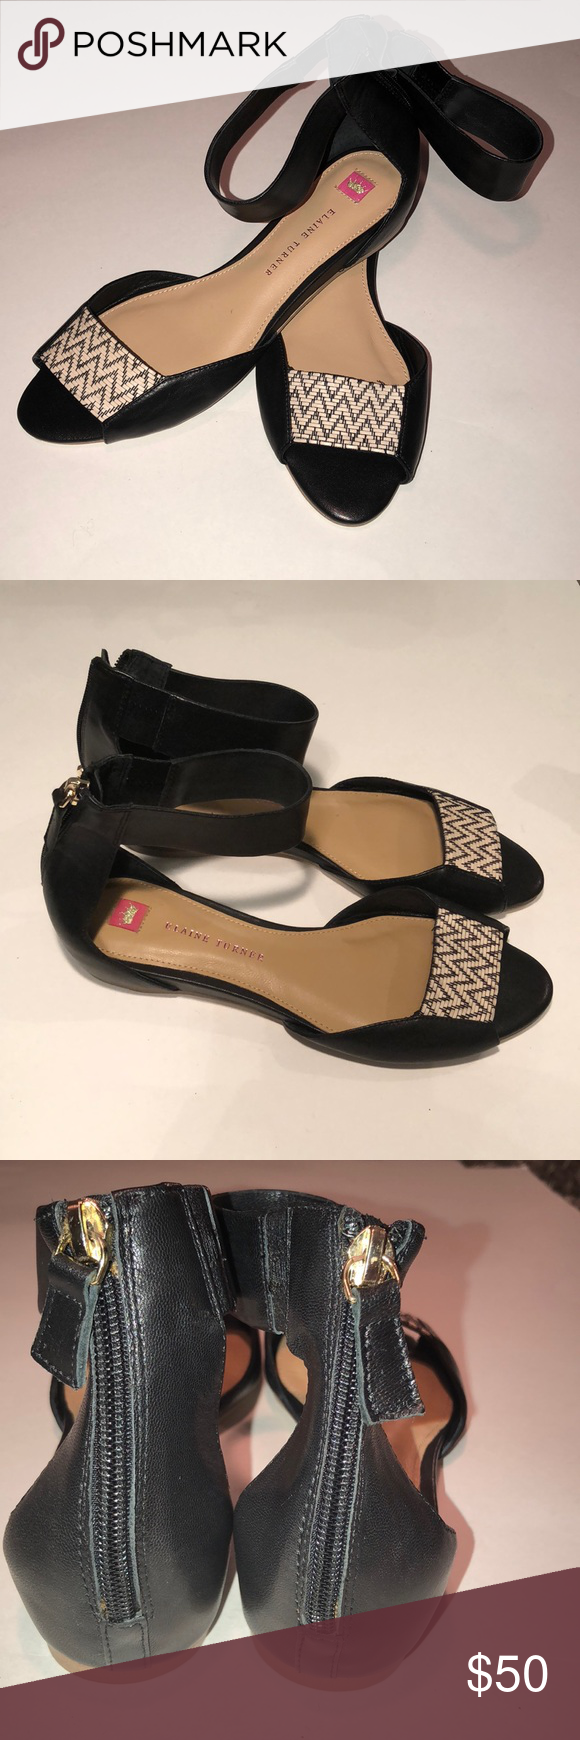 9351258548c72 Elaine Turner Leather Sandal This Sandle is black leather. Size 9. Weaved  top of